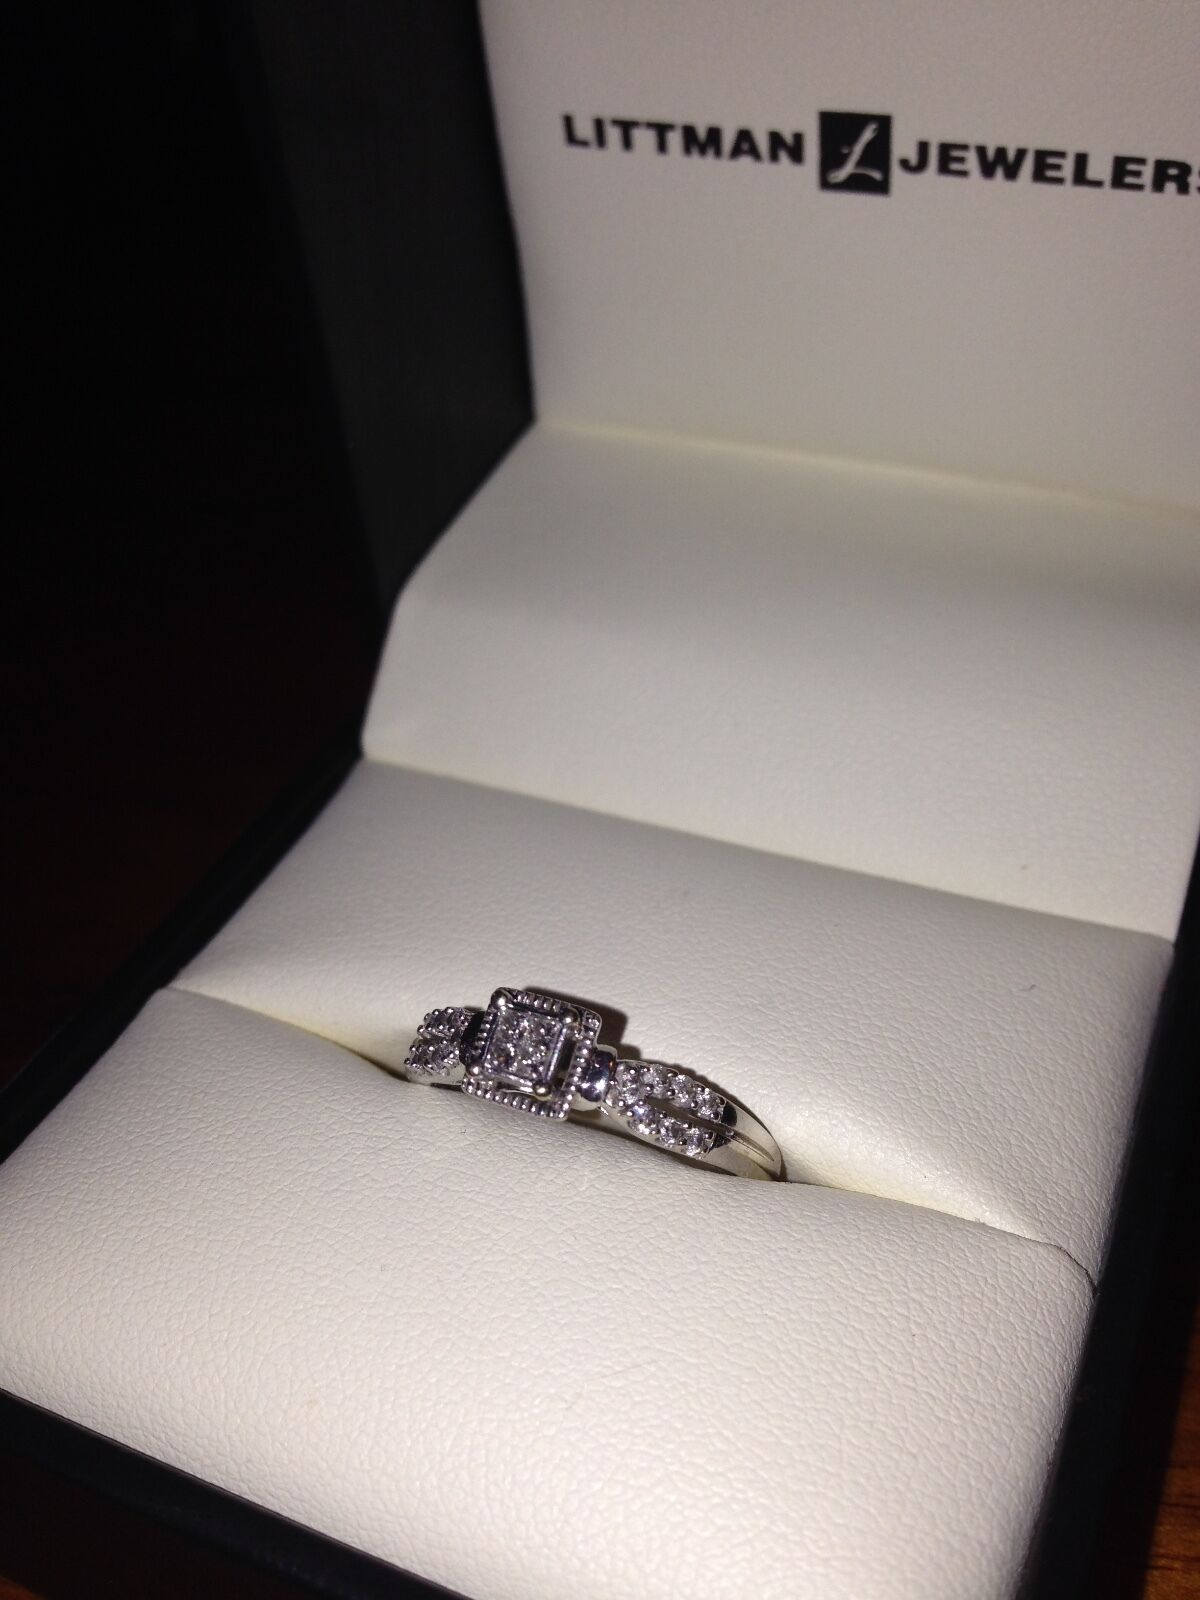 PROM 10K 1 5CTTW diamond ring size 8 with life-time warranty care-plan